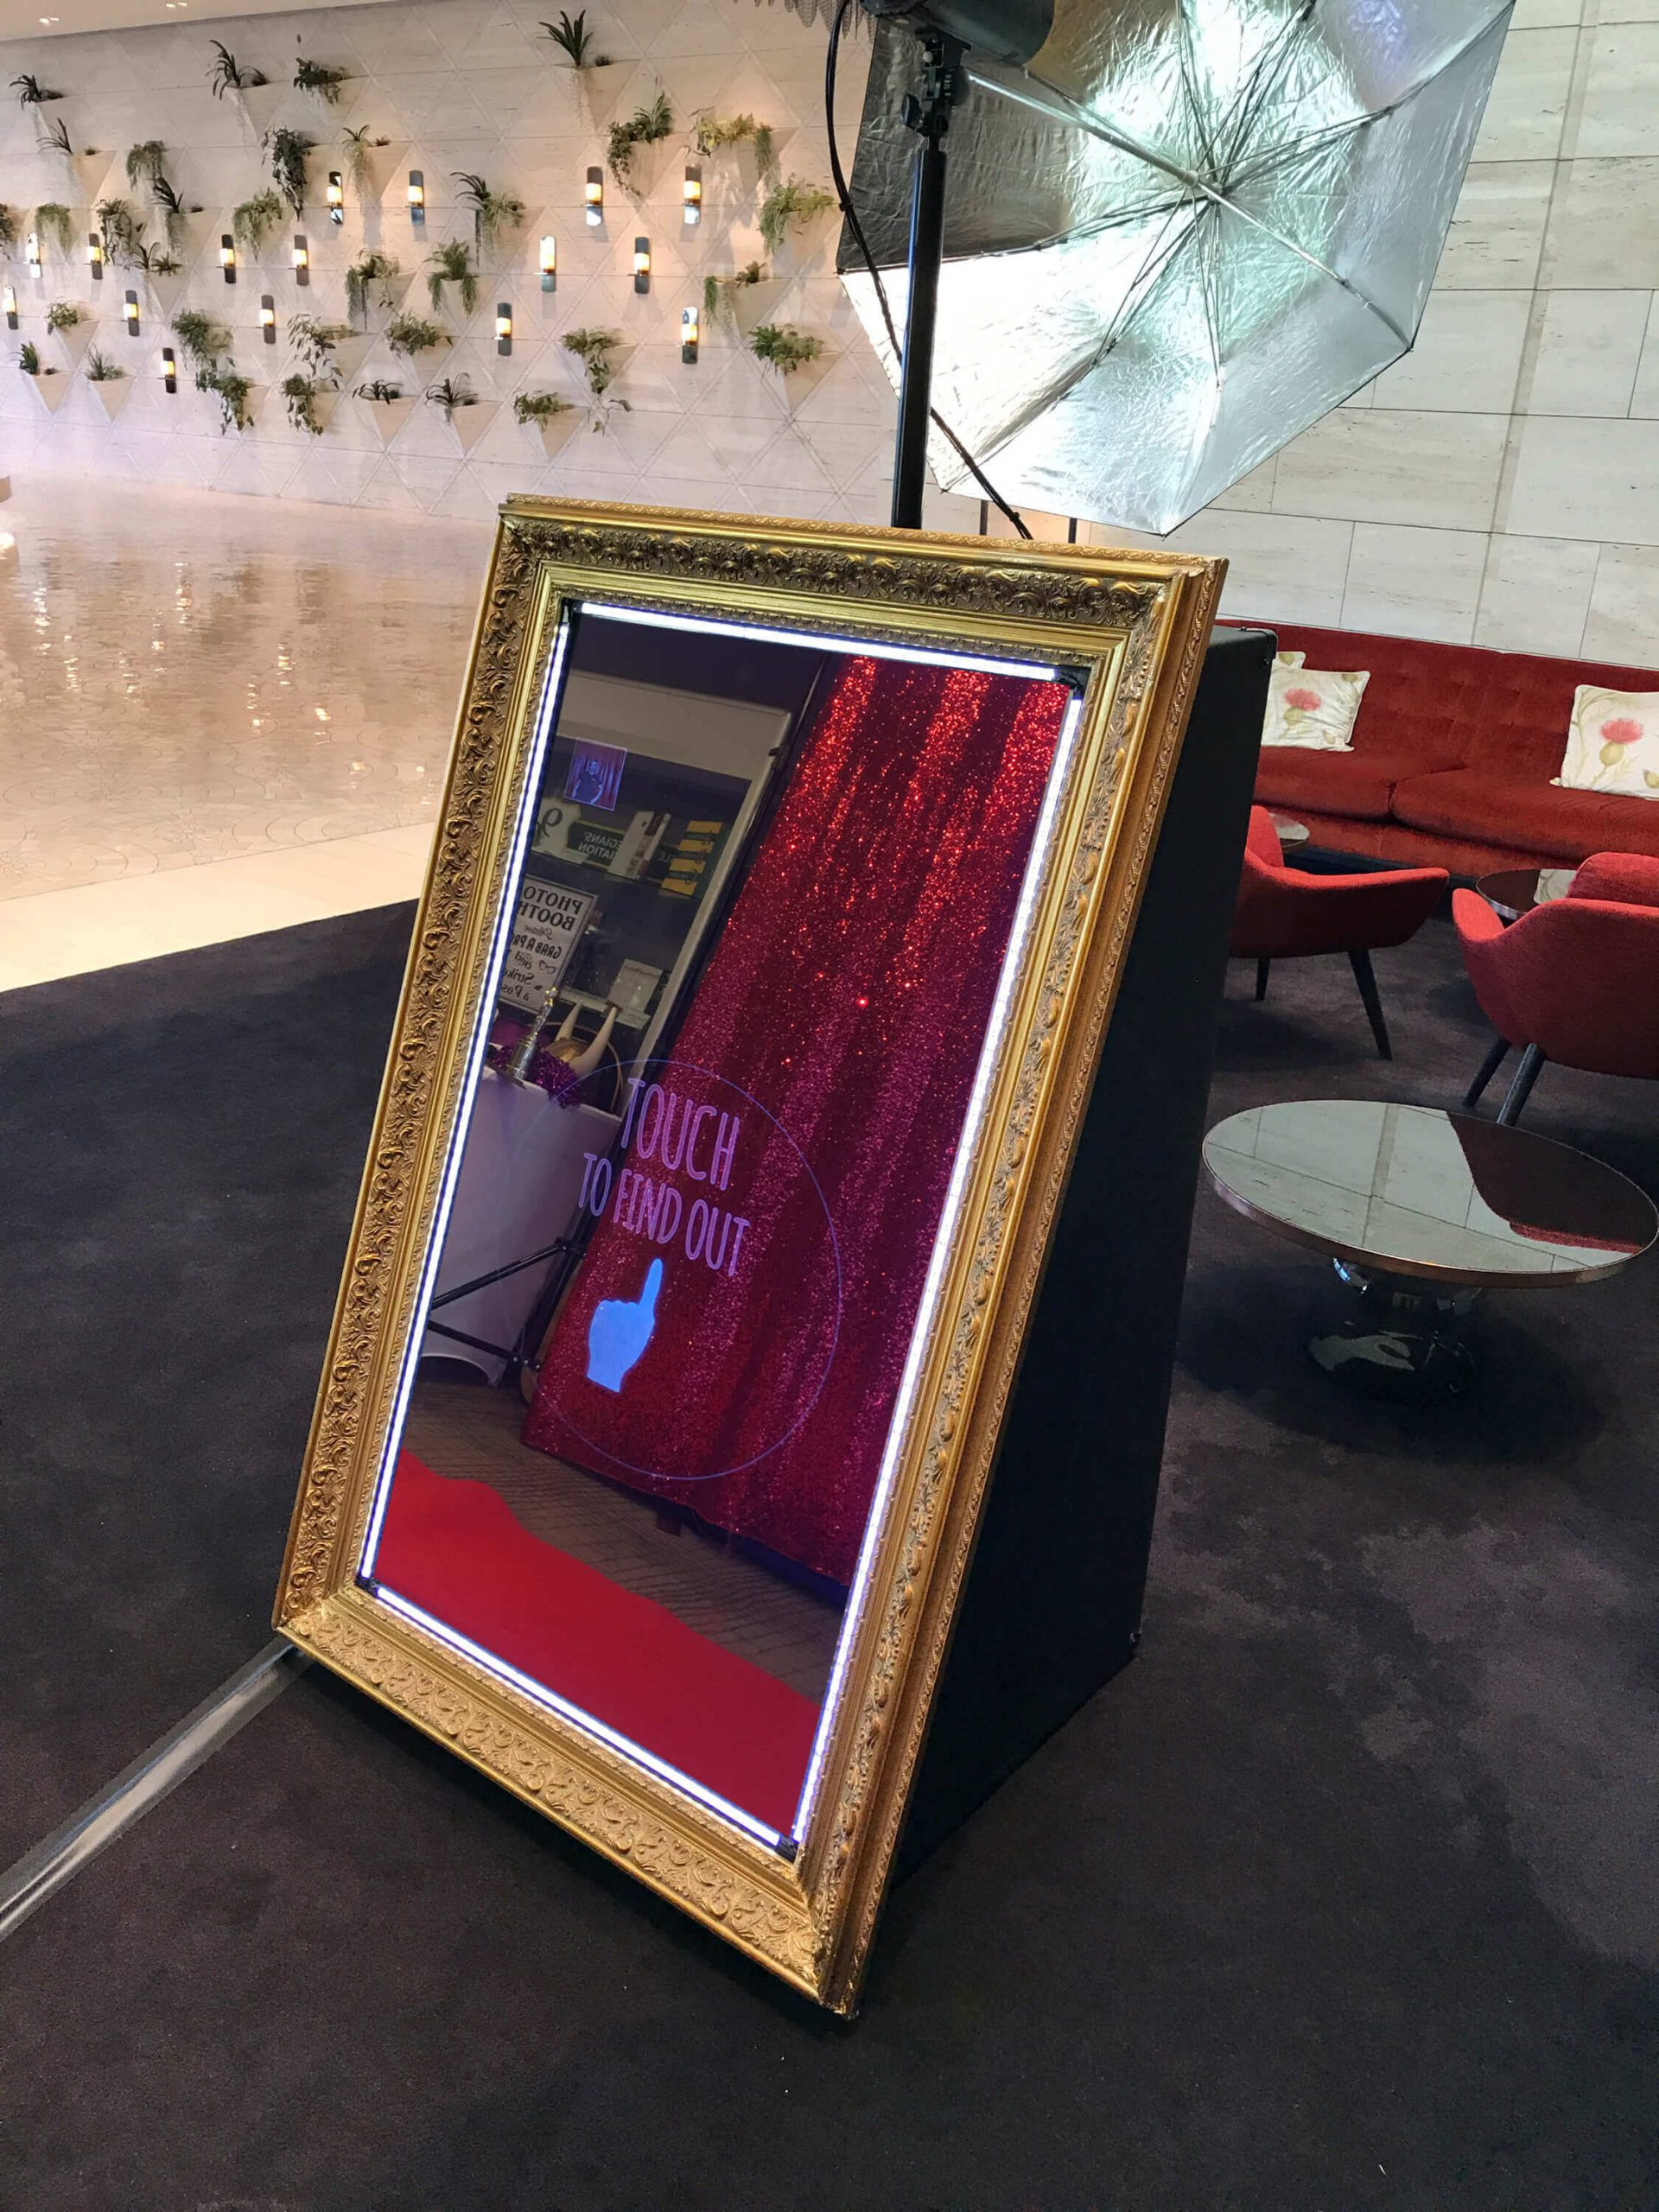 Mirror Photo Booth Gallery